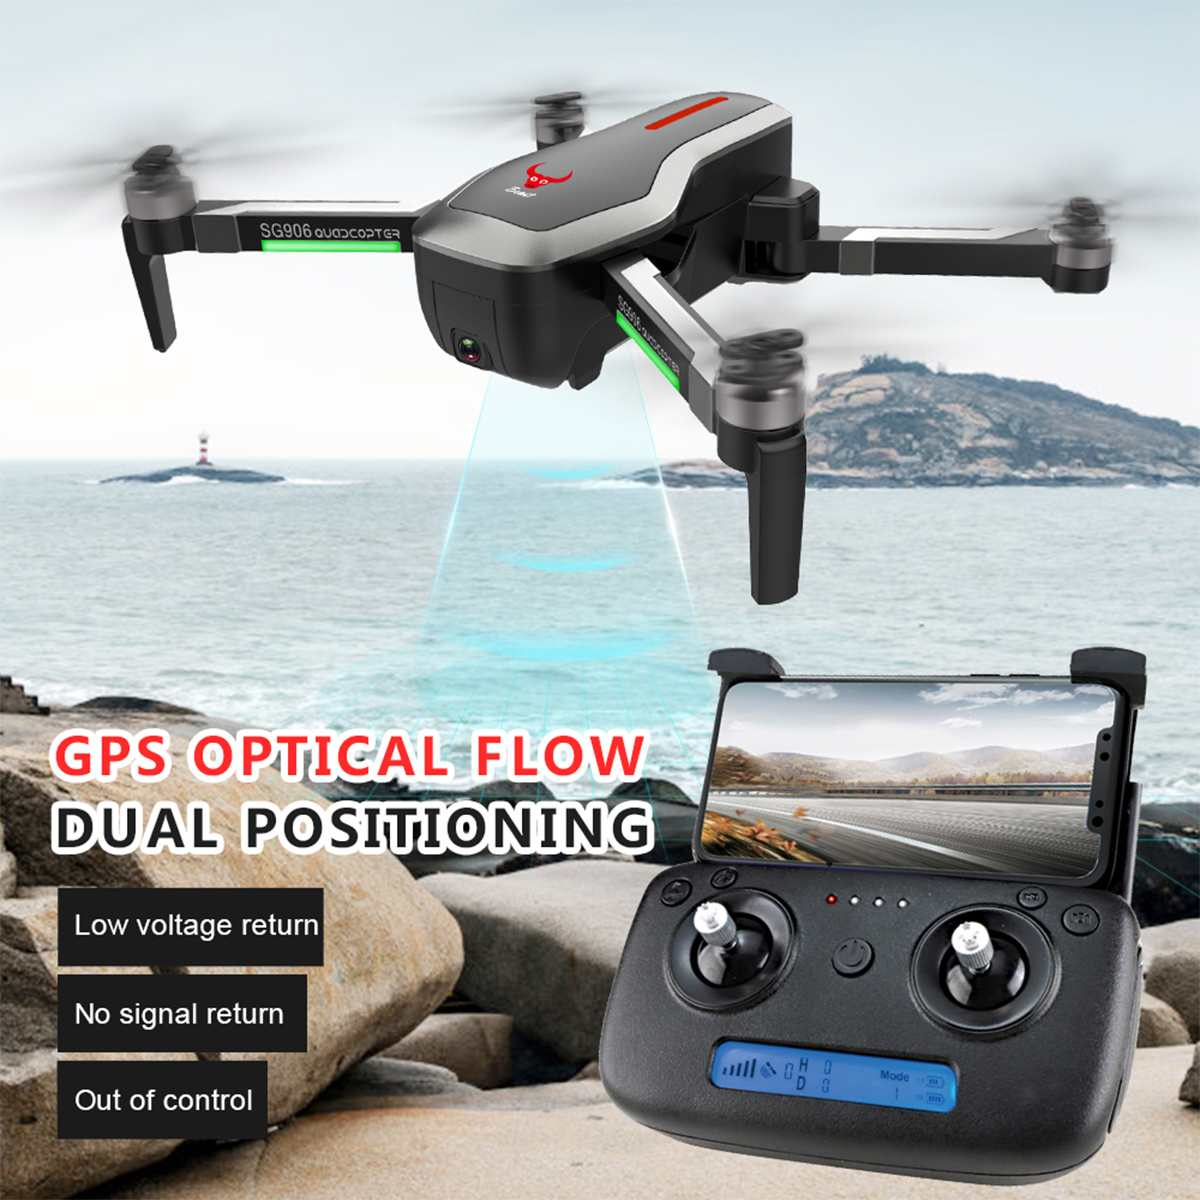 SG906 mini drone GPS 5G WIFI FPV 4K Camera drone Brushless Selfie Foldable RC Drone drones with camera hd rc helicopterSG906 mini drone GPS 5G WIFI FPV 4K Camera drone Brushless Selfie Foldable RC Drone drones with camera hd rc helicopter